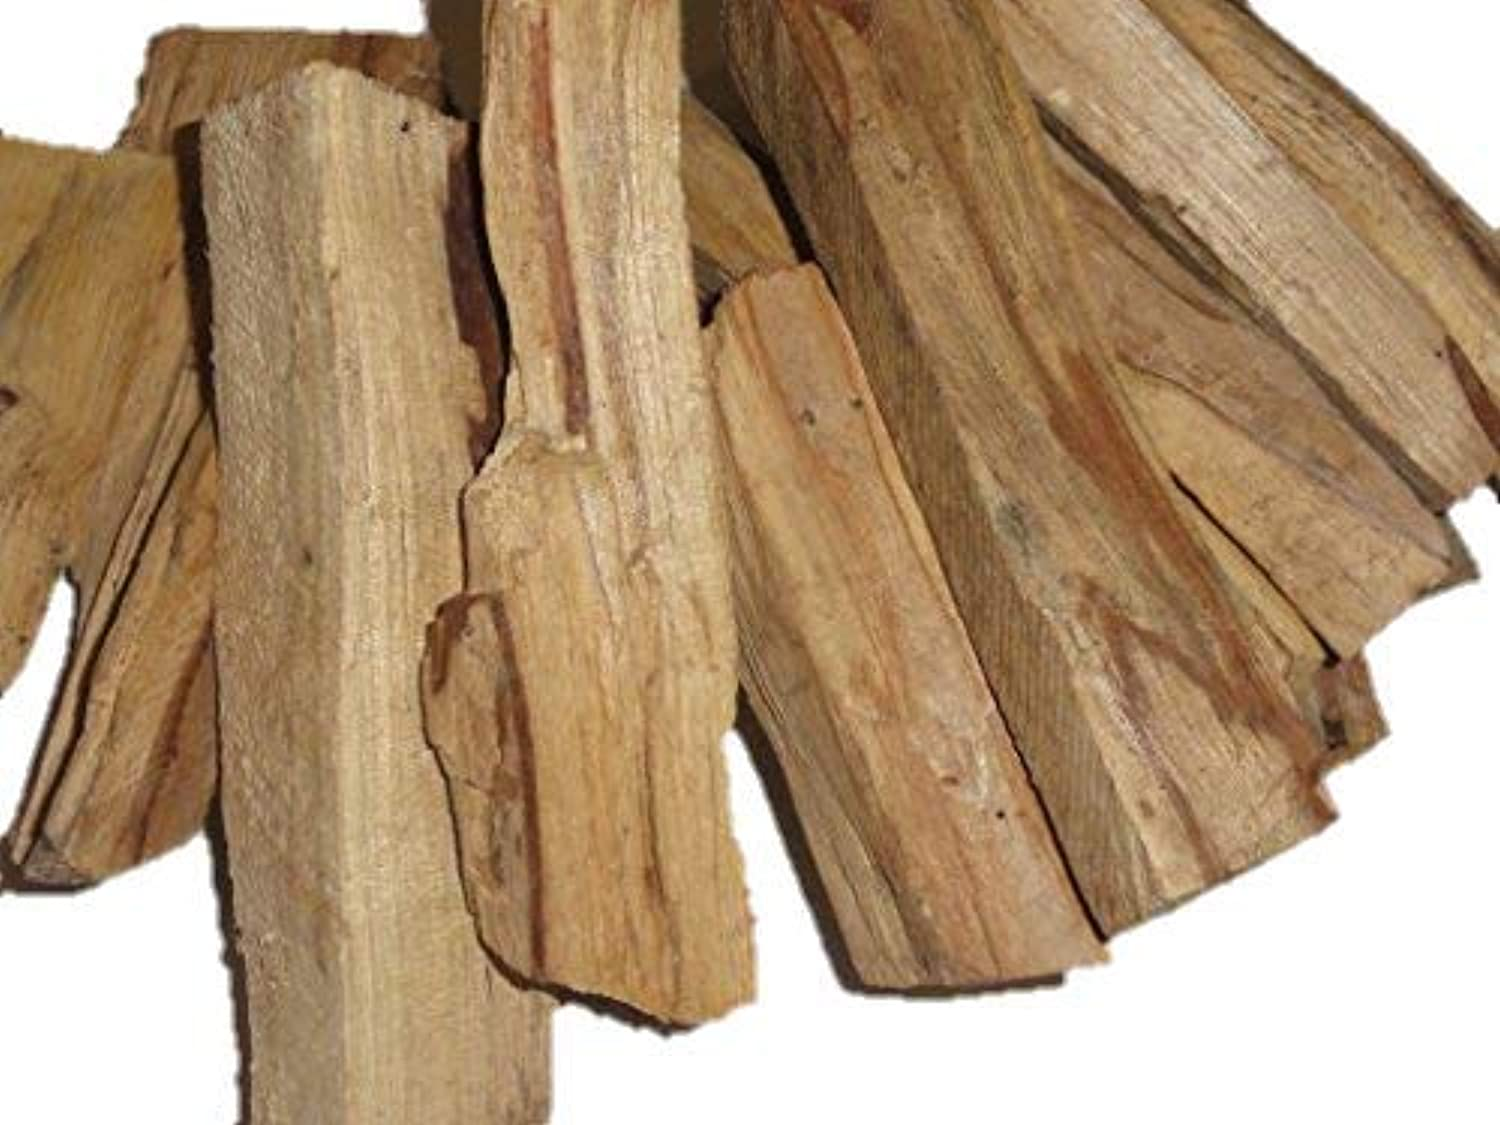 Palo Santo 2 pounds bulk package, 85 DENSE sticks, the most Pungent smelling, premium ethically harvested Peruvian holy wood Incense Sticks for Purifying, Cleansing, Healing, and Meditating (2 pounds)